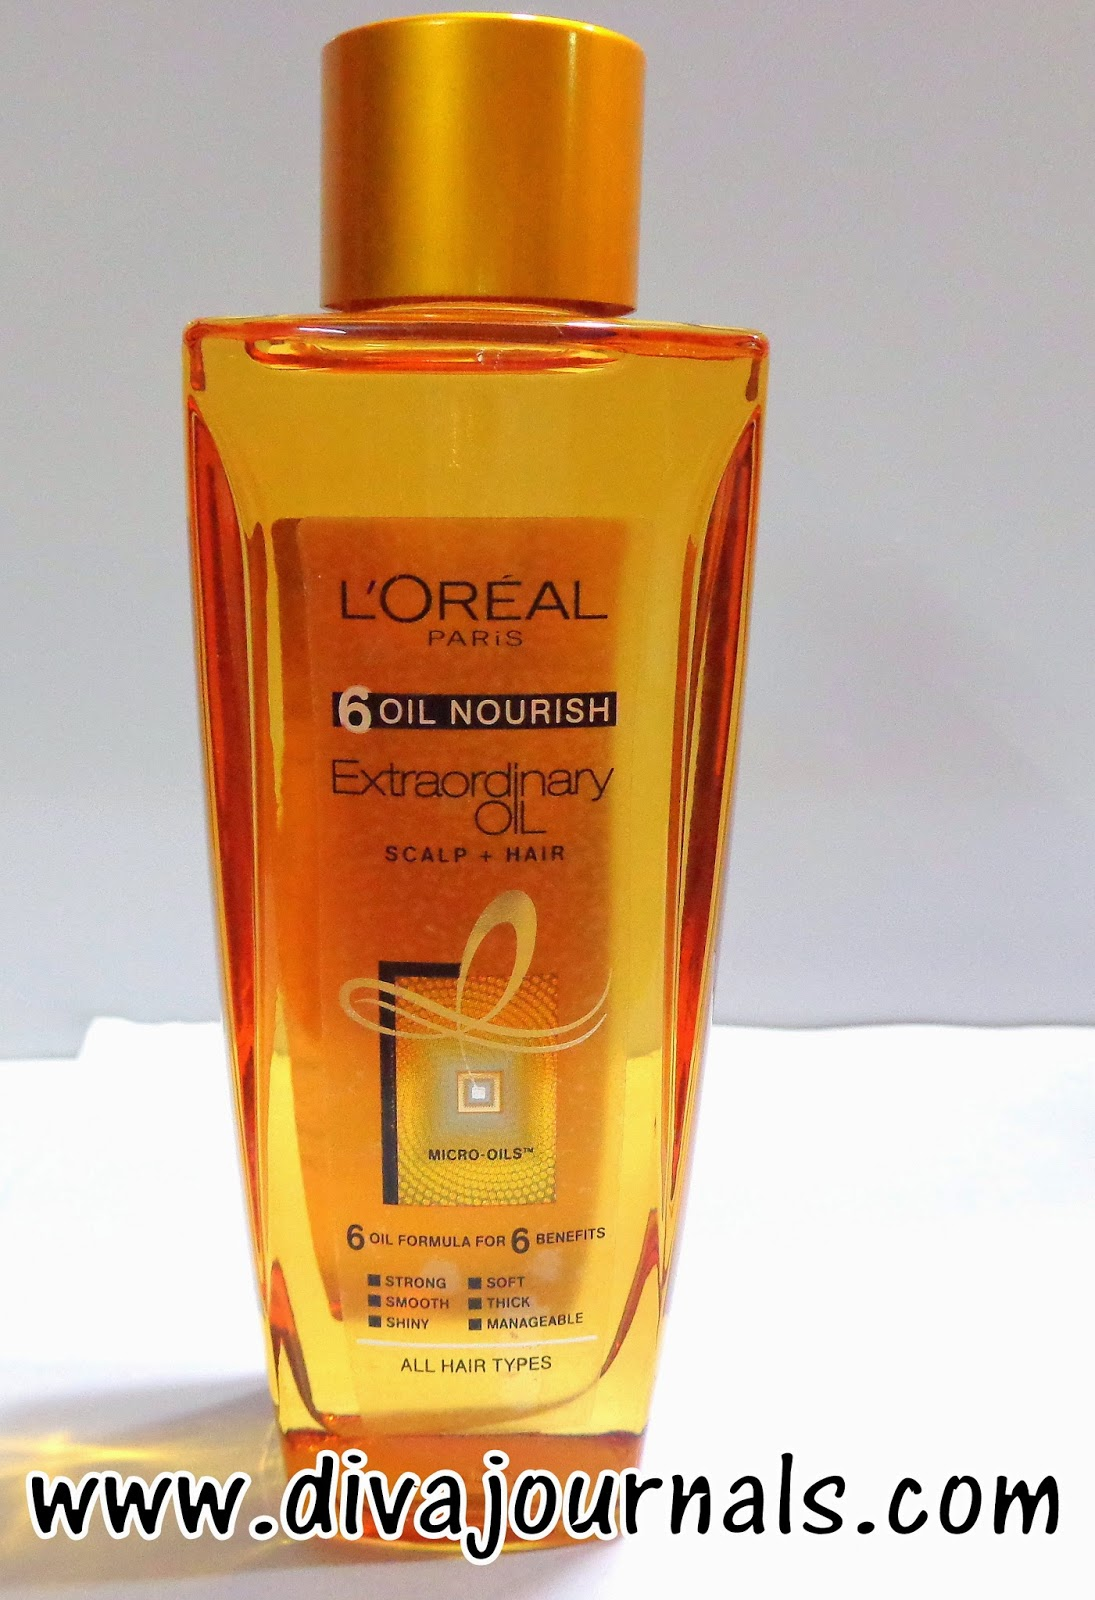 Loreal Paris 6 Oil Nourish Extraordinary Oil Review